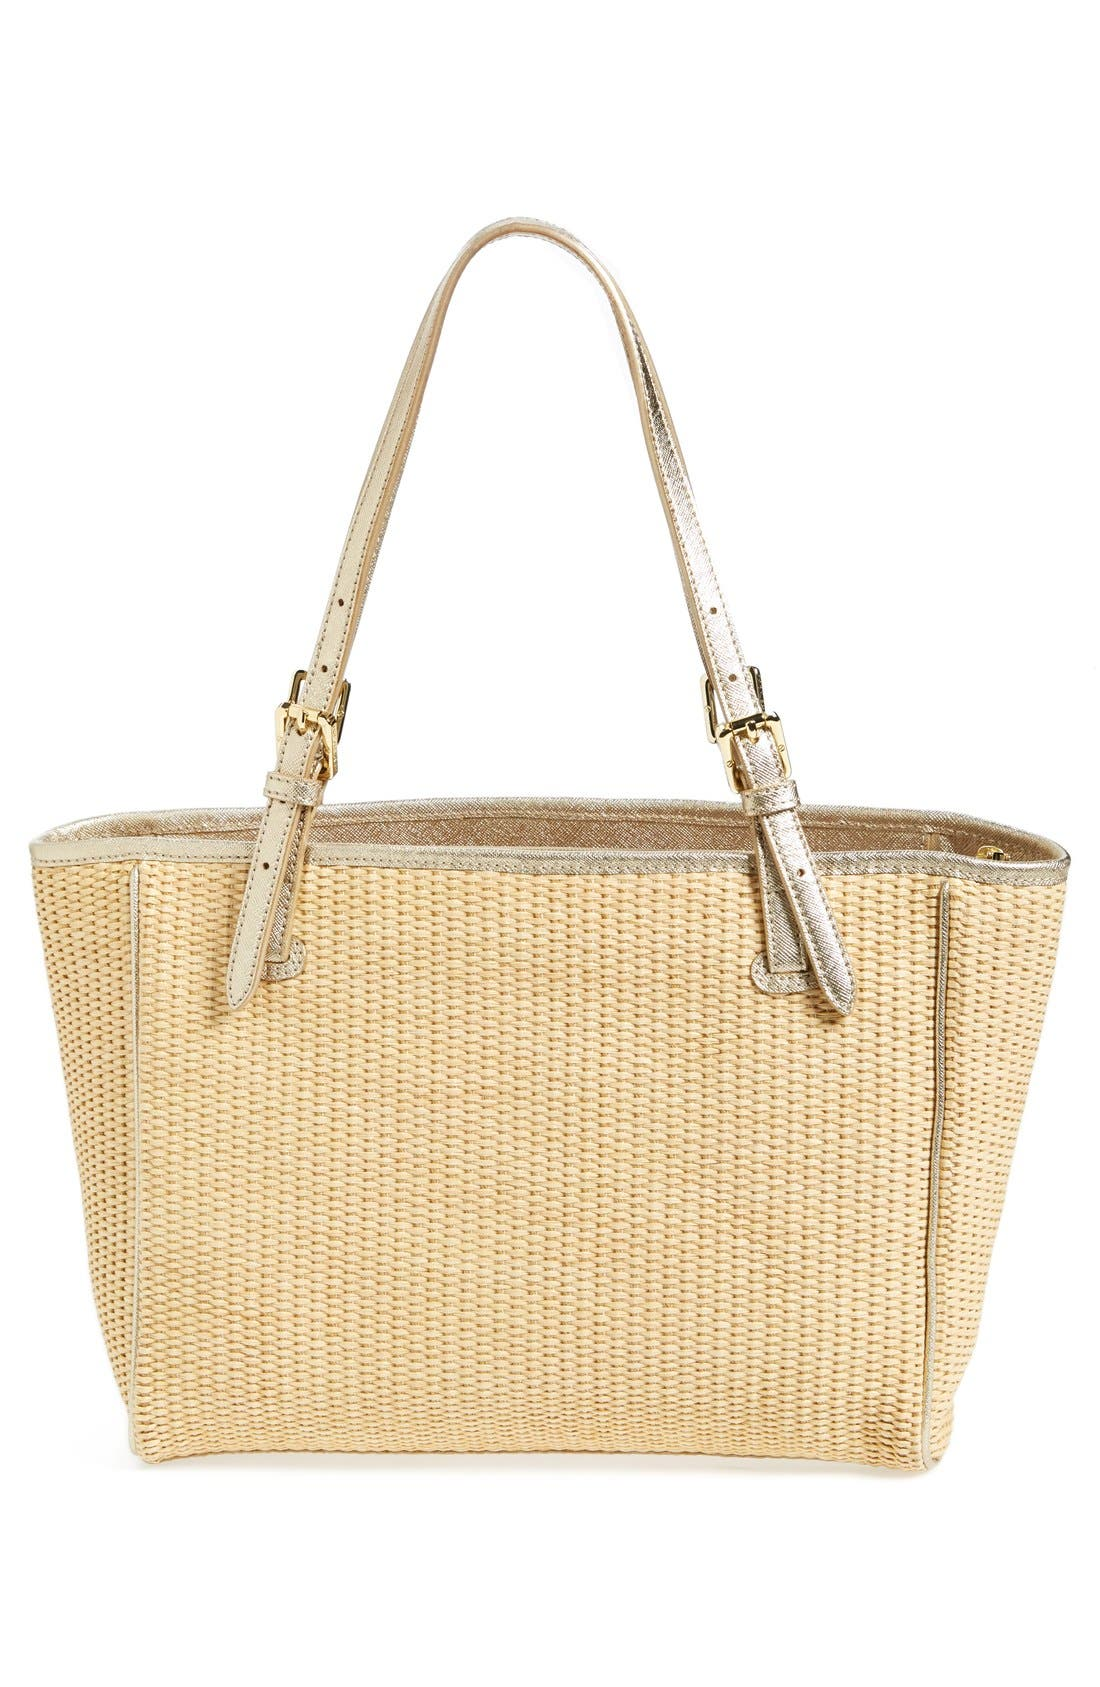 Alternate Image 3  - Tory Burch 'Small York' Straw Buckle Tote